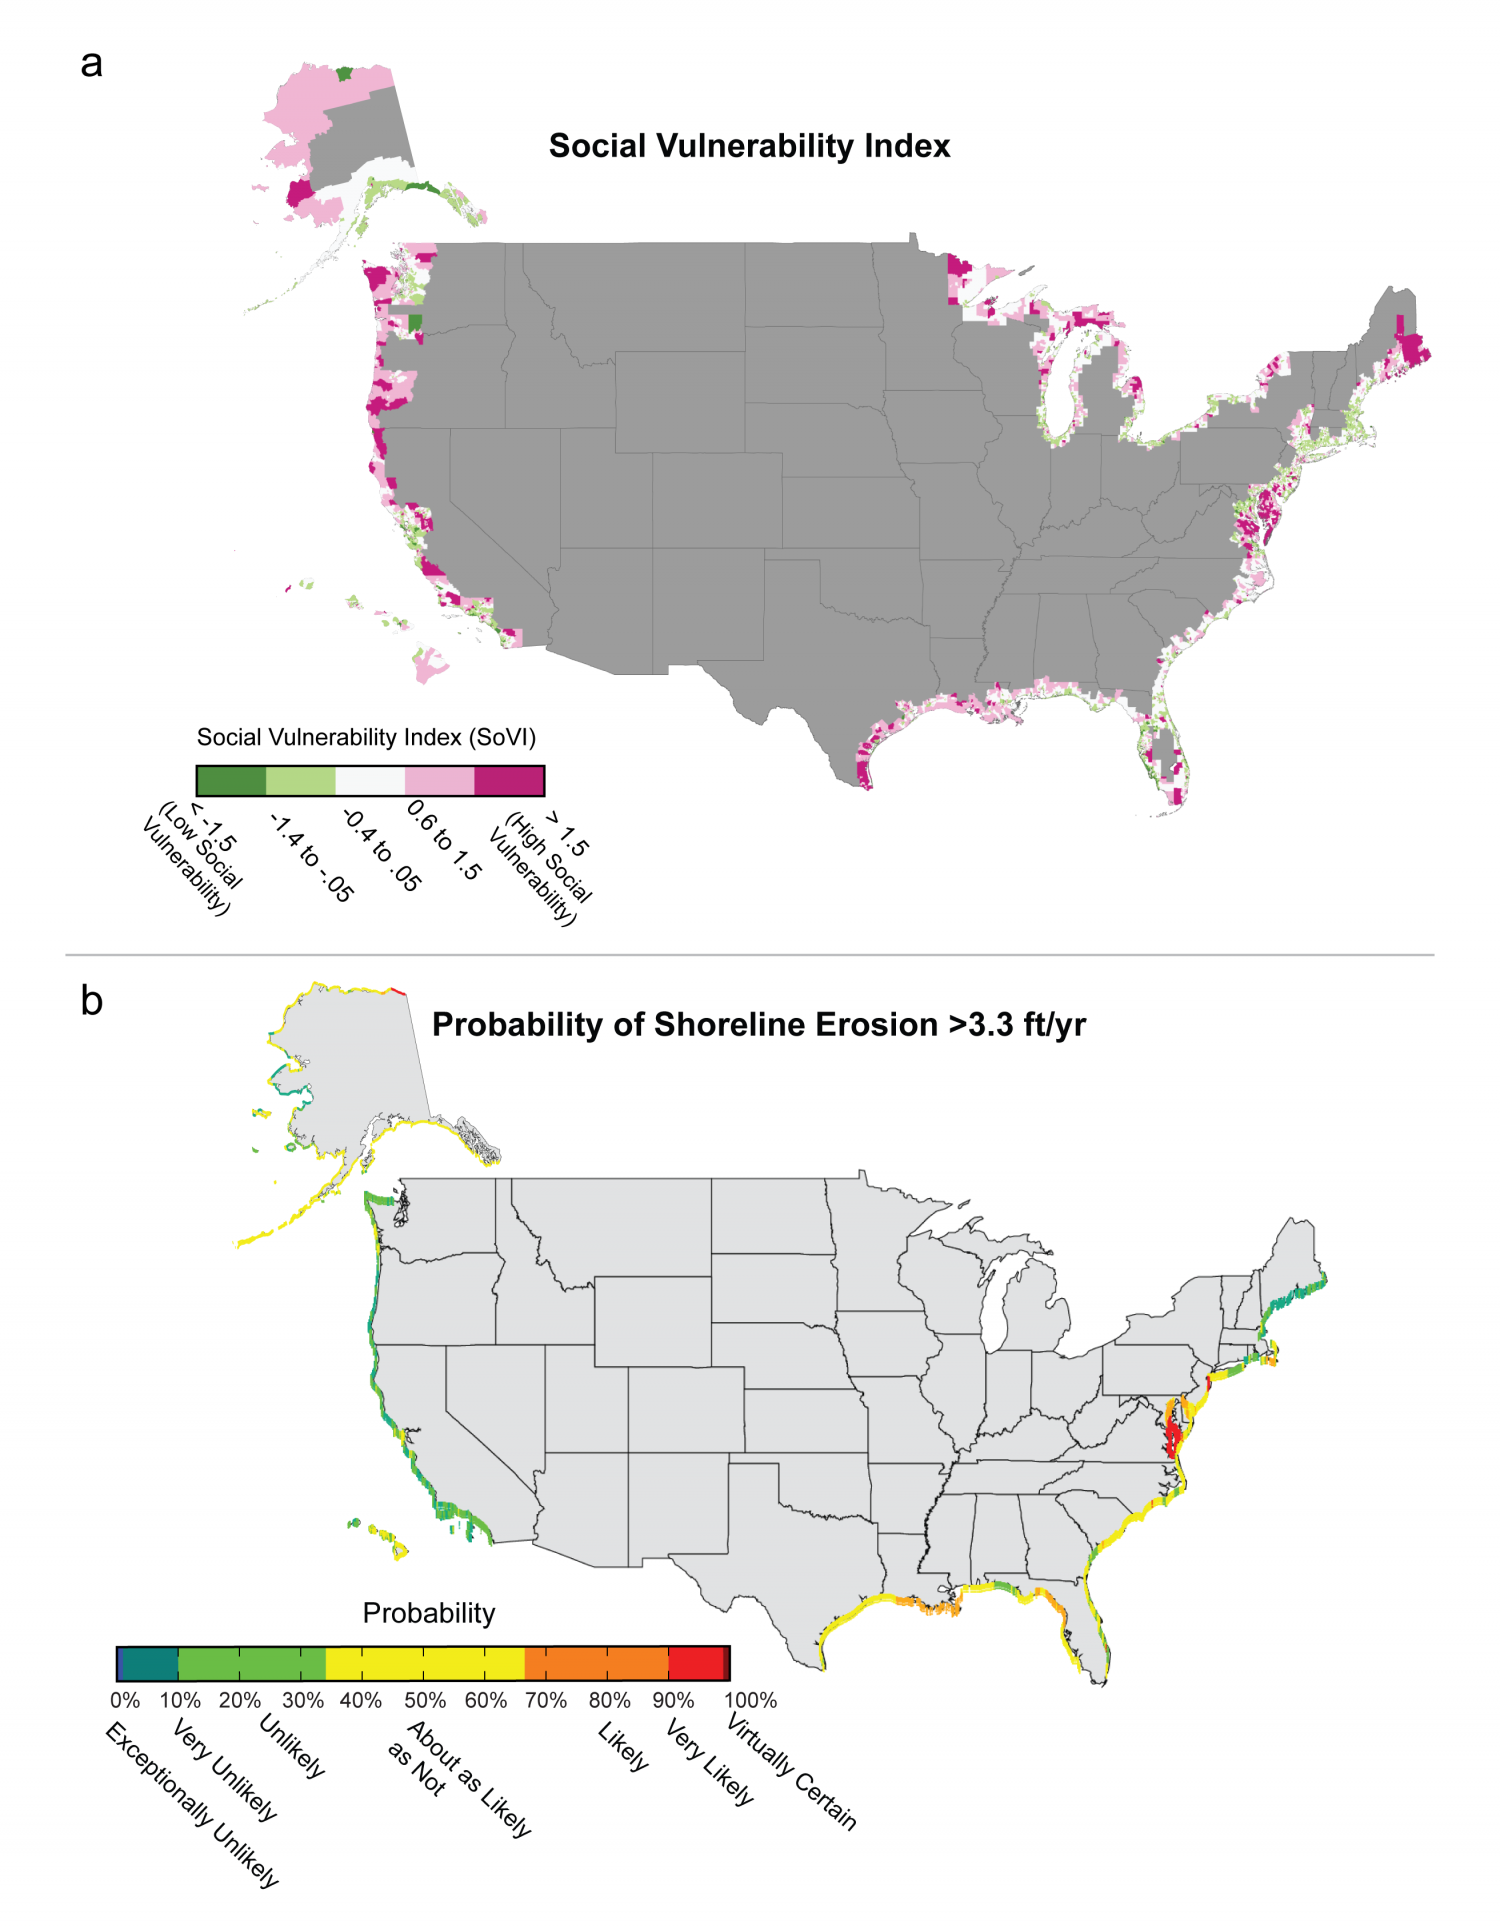 Social vulnerability and probability of shoreline erosion in the US